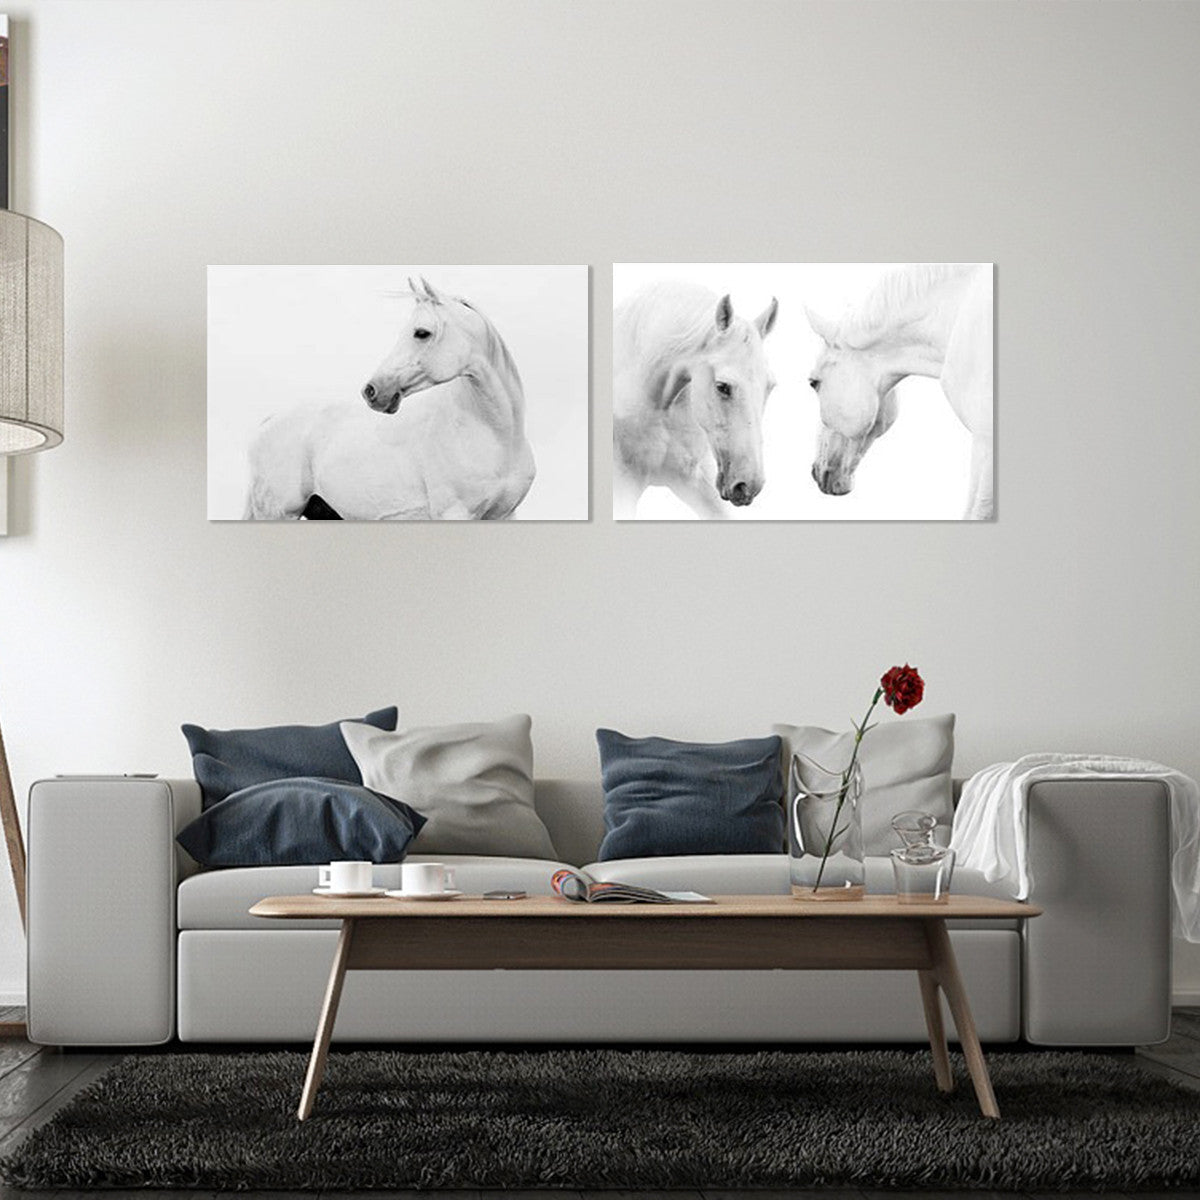 Purity Horses 2 Piece Canvas